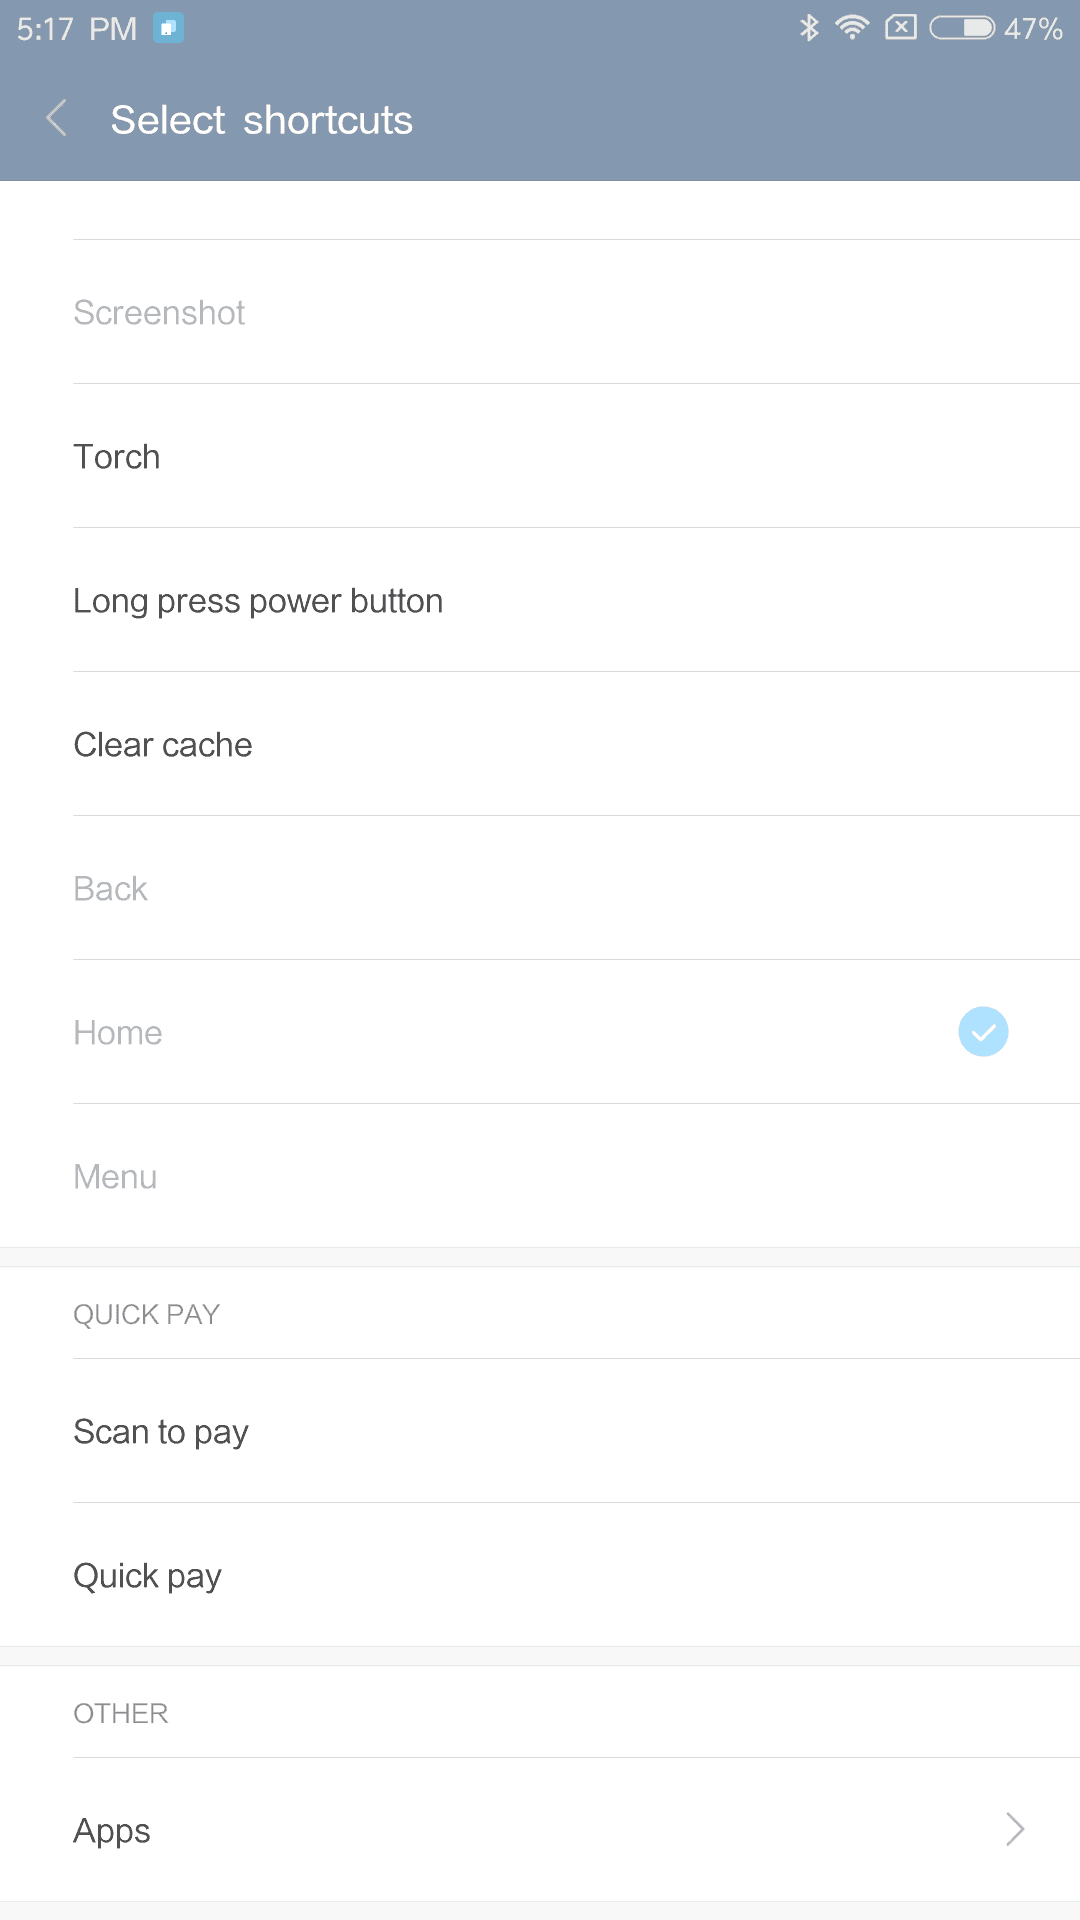 Xiaomi Mi Max AH NS Screenshots shortcut menu 4